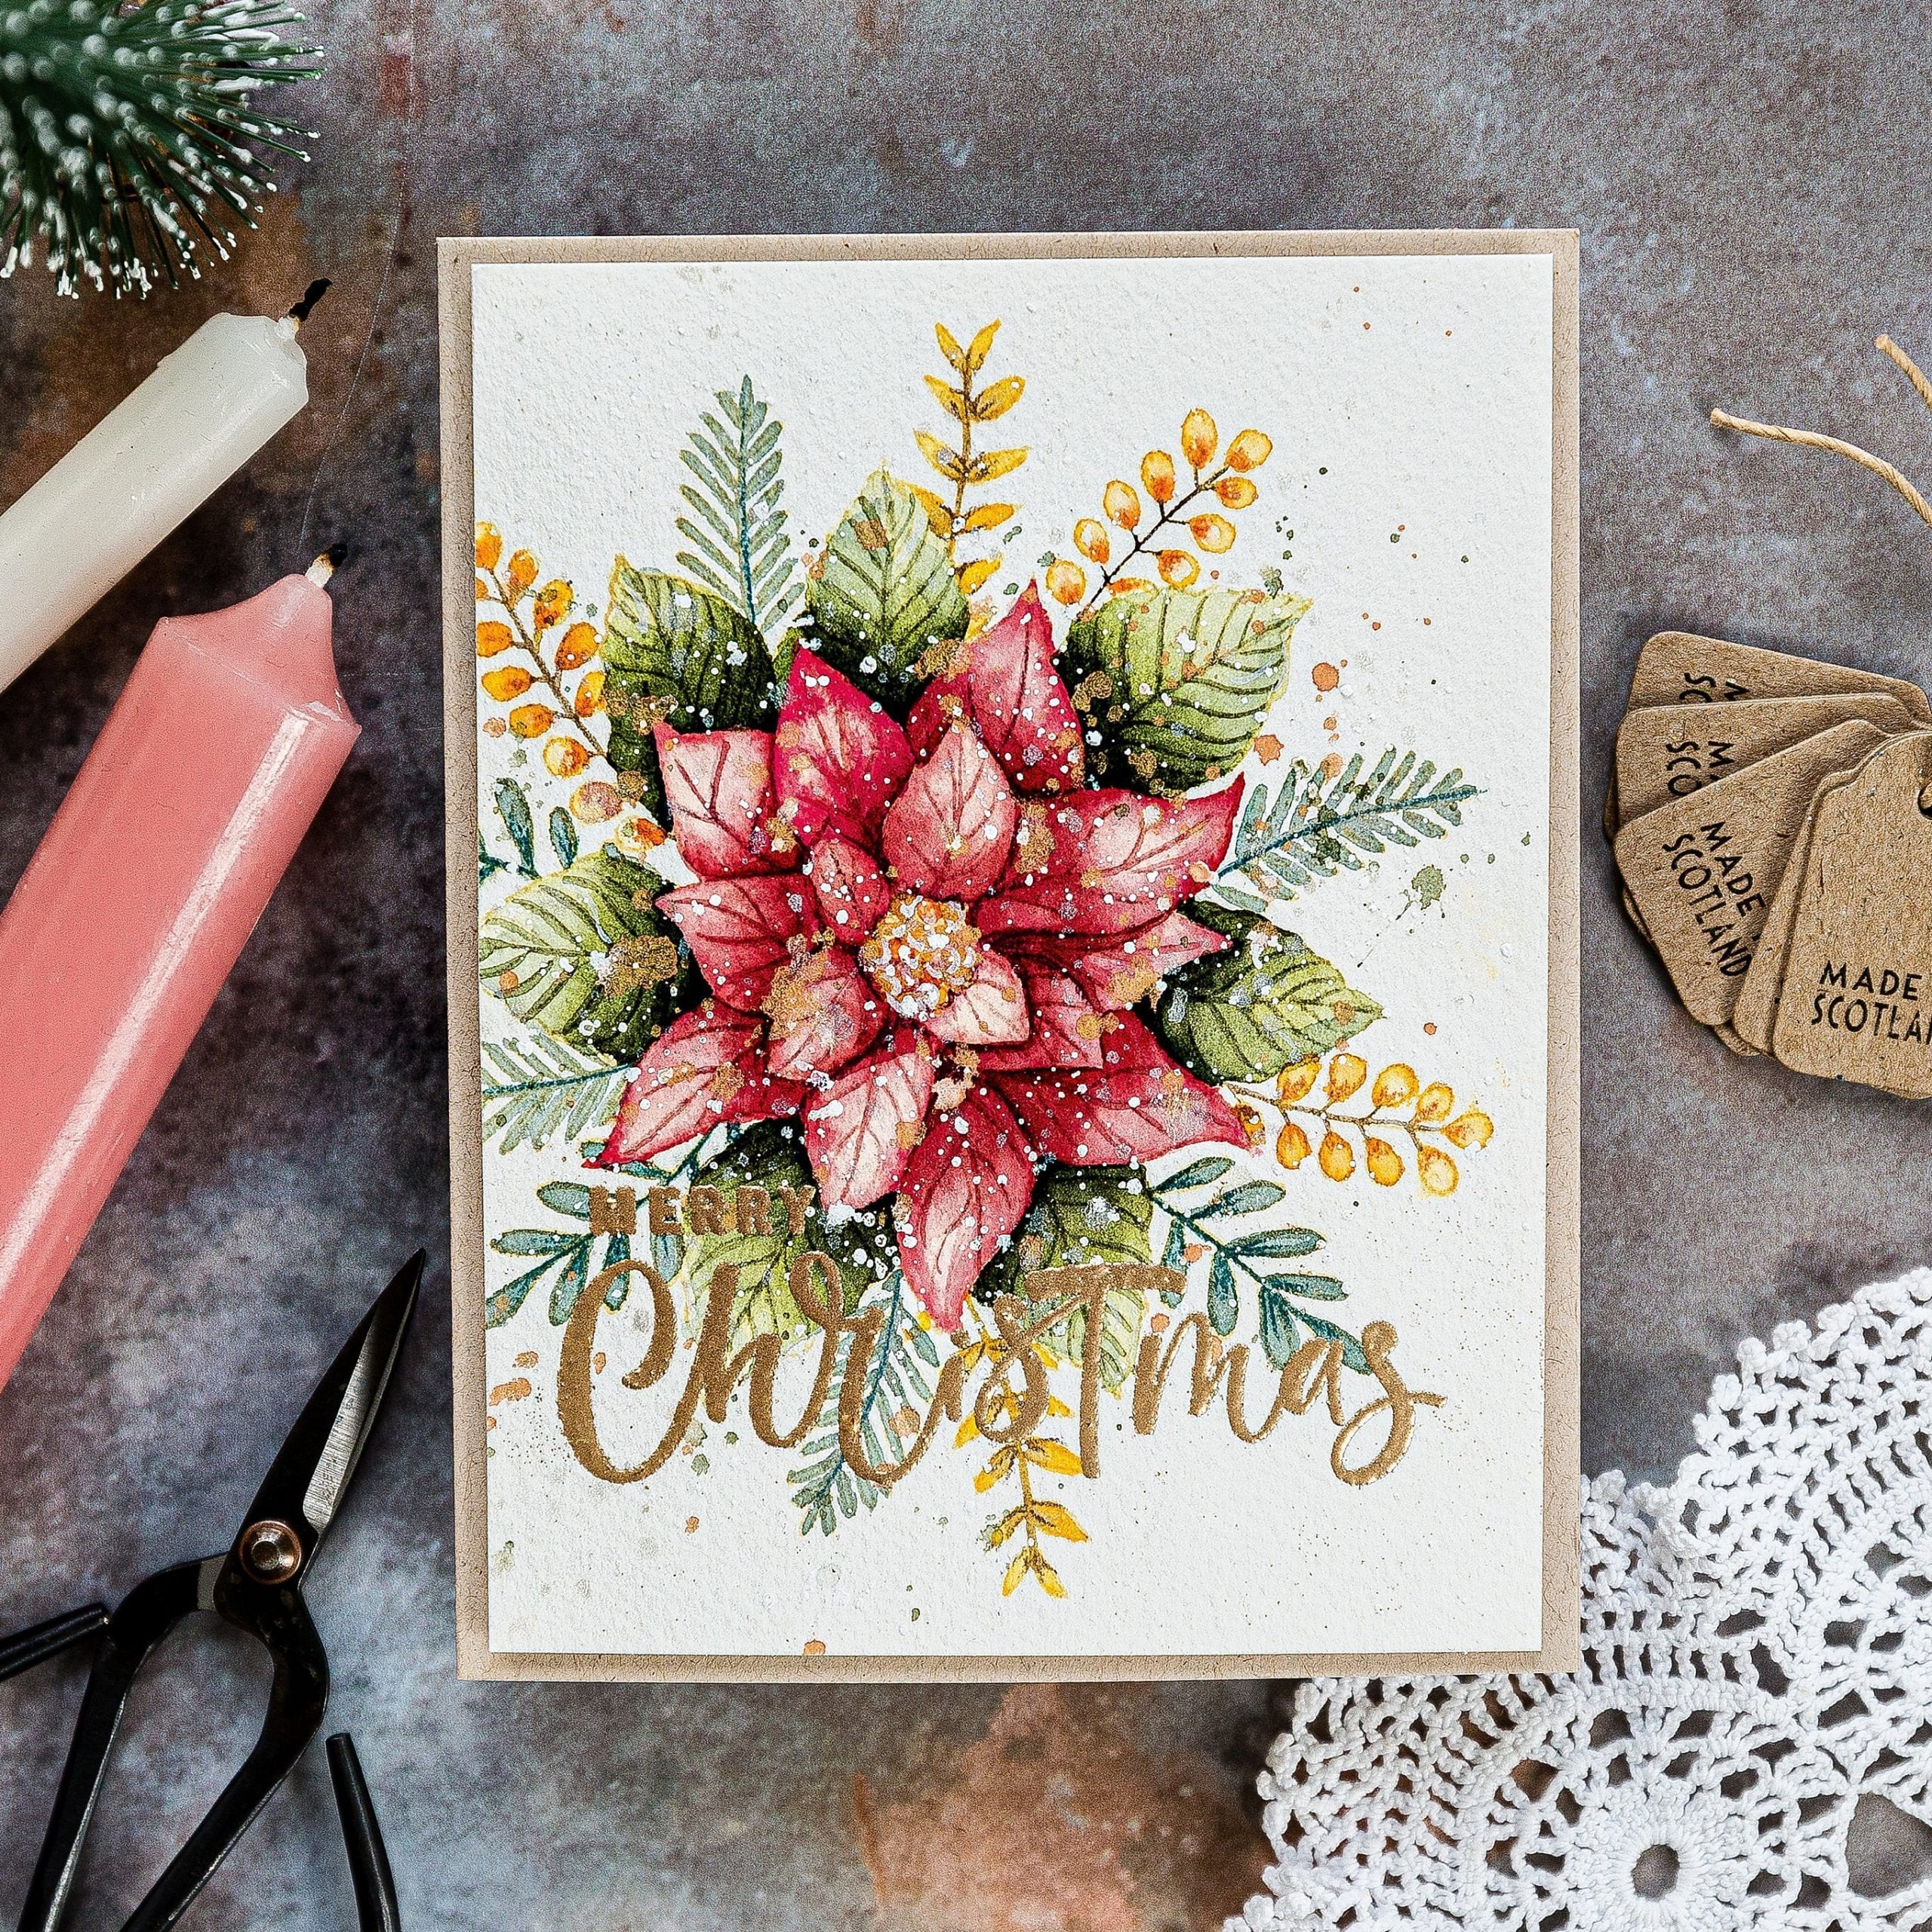 Gina K exclusive STAMPtember Festive Floral set. Handmade watercoloured Christmas card by Debby Hughes. Find out more here: https://limedoodledesign.com/2019/09/gina-k-stamptember/